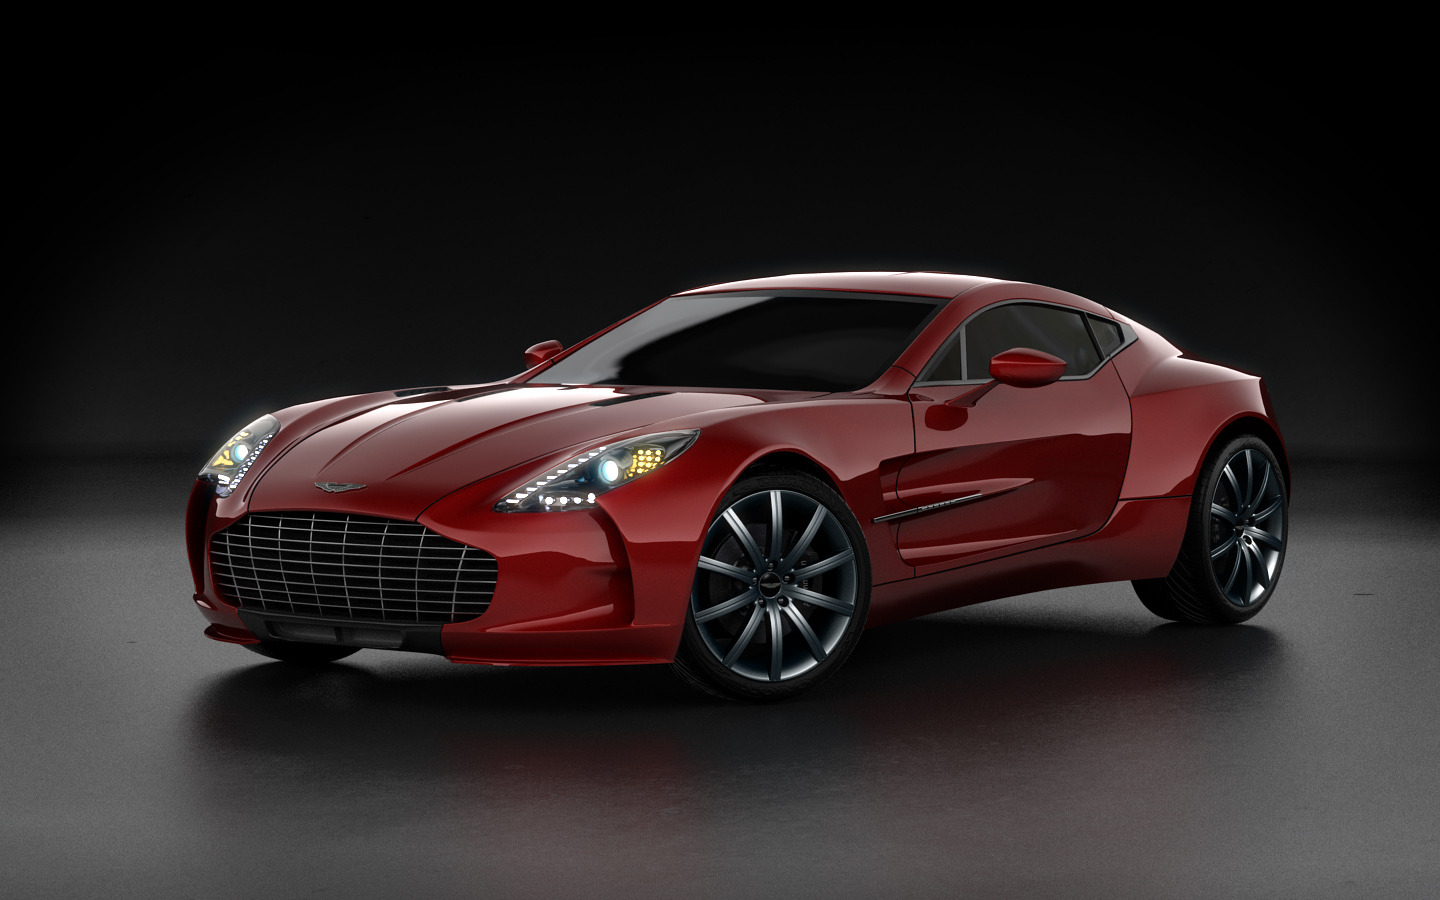 Aston Martin One 77 Red 1 1440x900